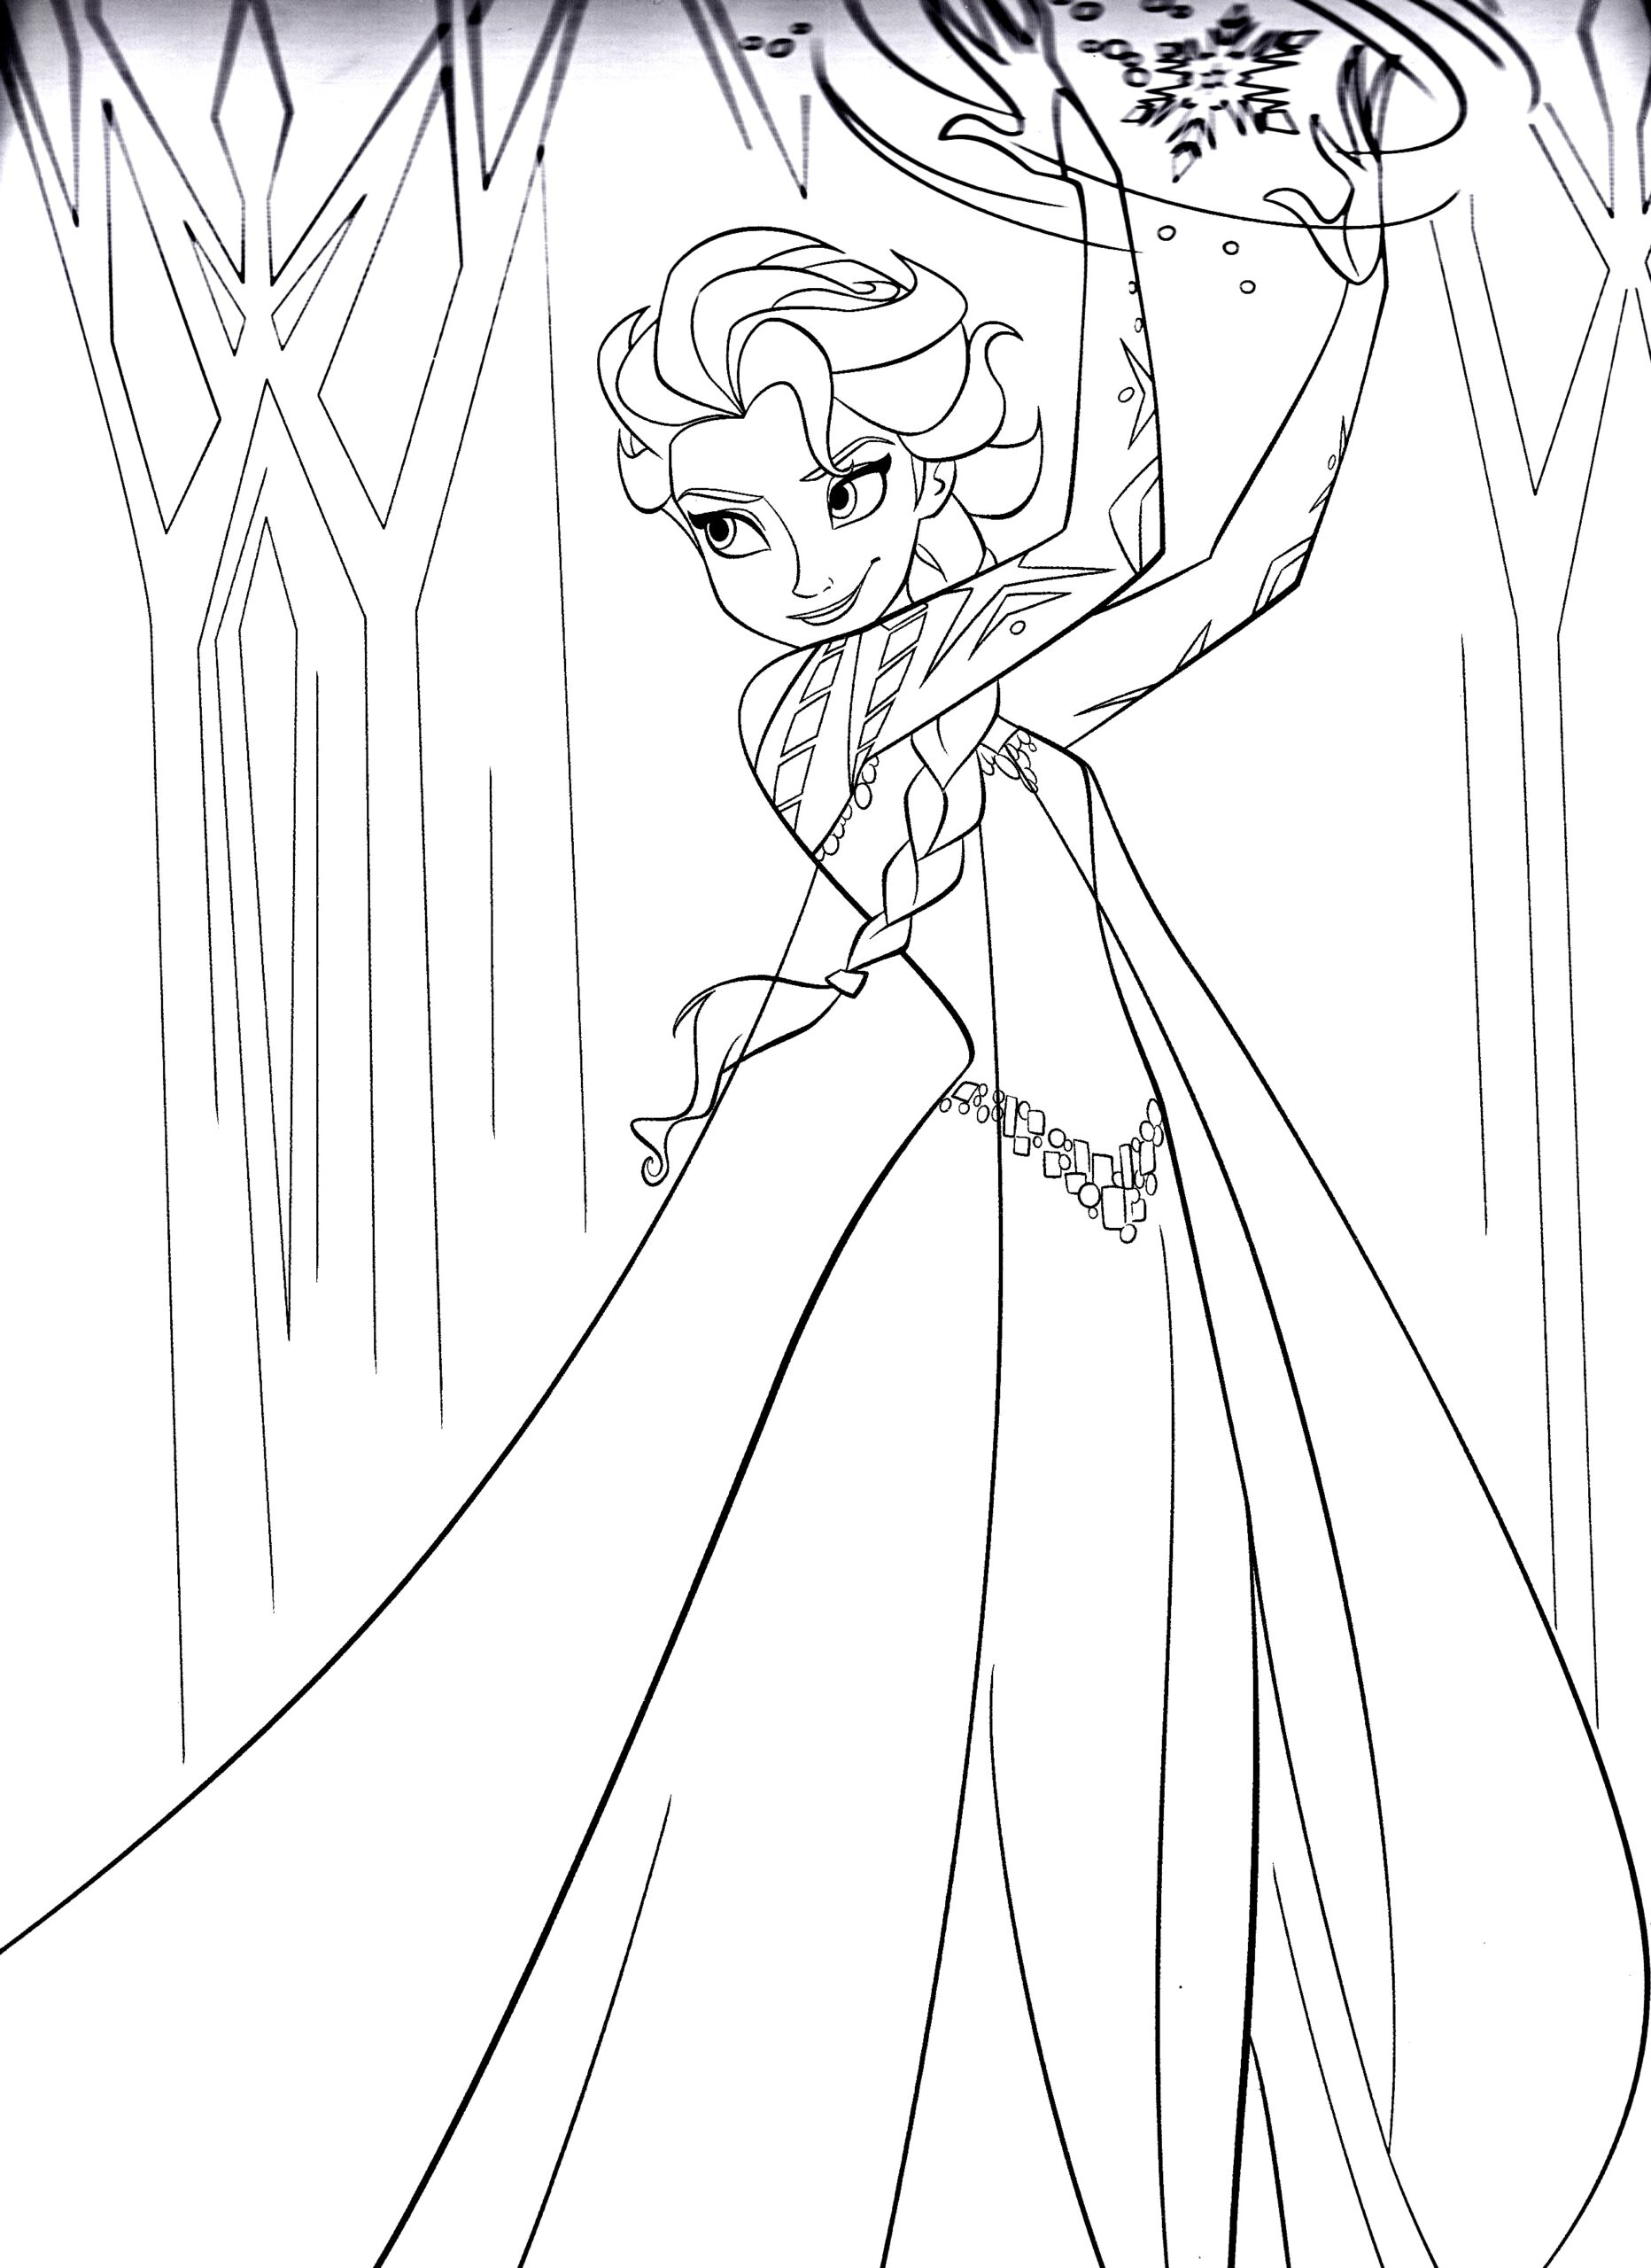 frozen to print for free kids coloring elsa snail sheet blocks sheets pet paw light up coloring pages Free Elsa Coloring Page